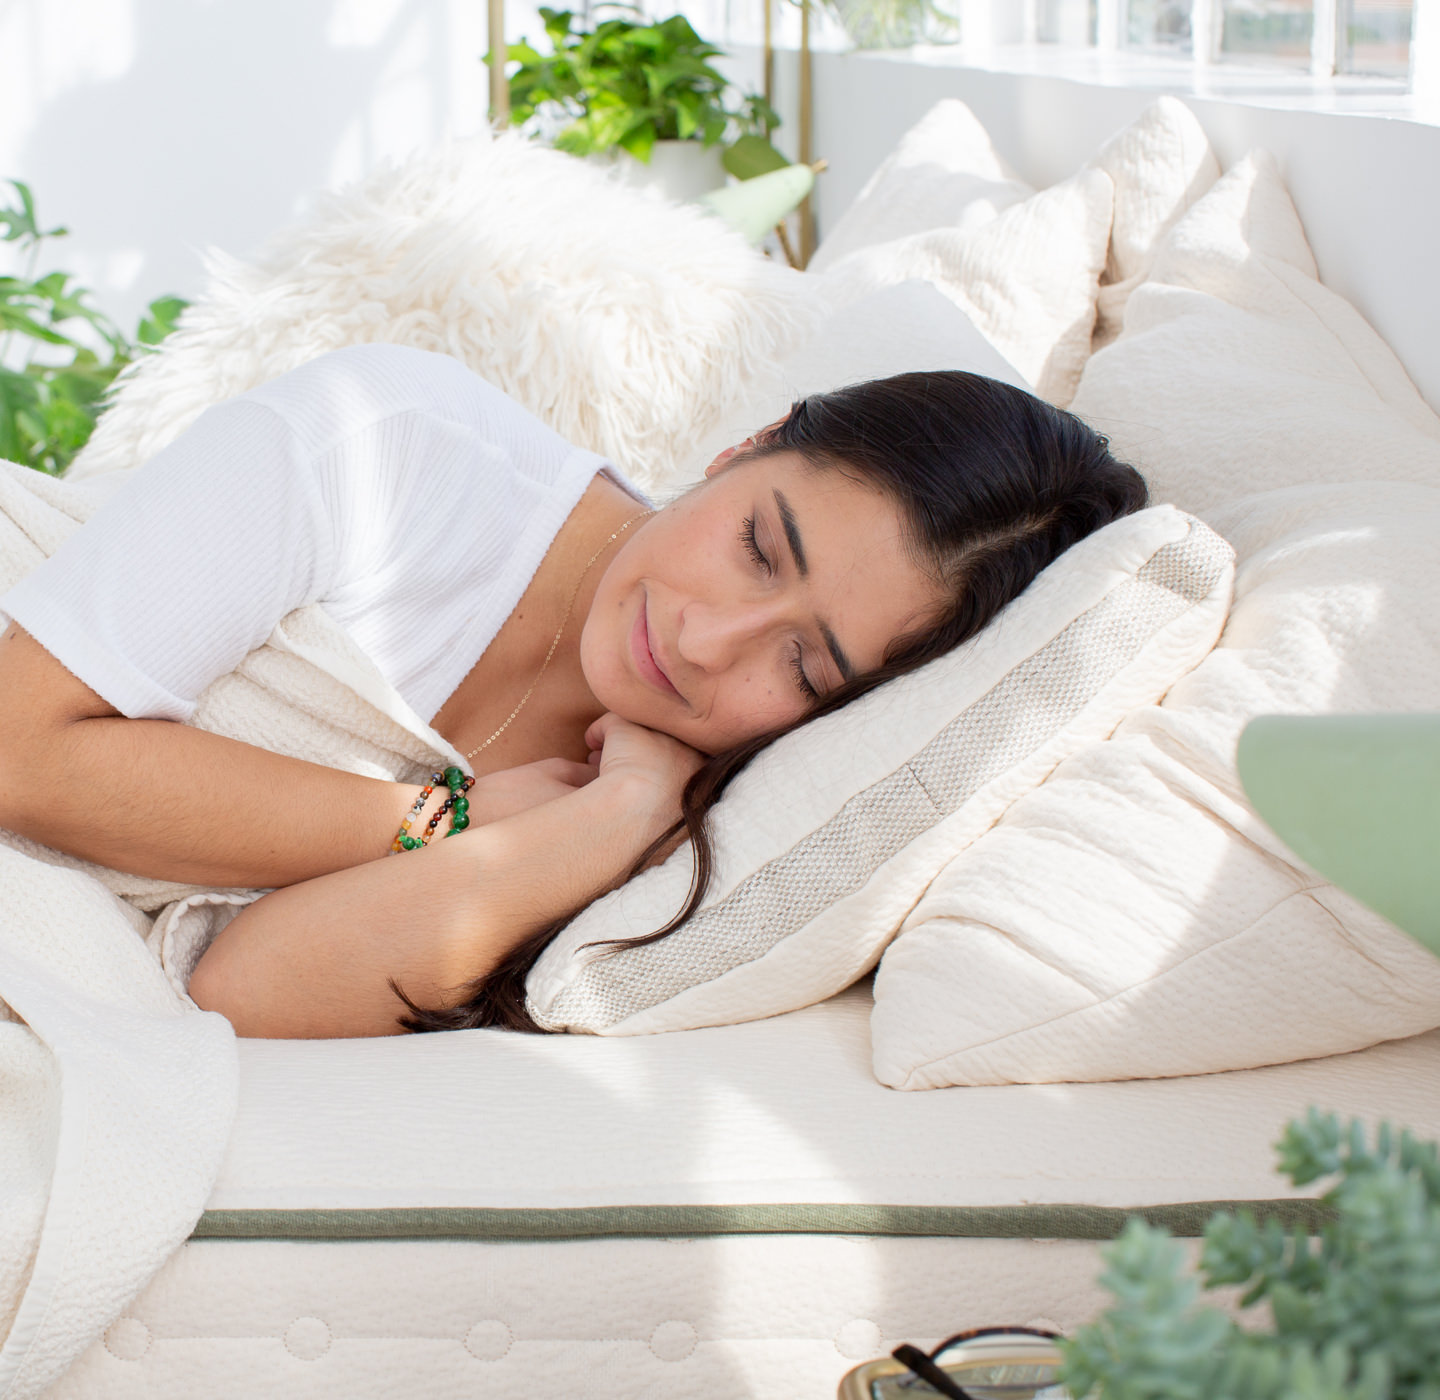 is the molded latex pillow comfortable?